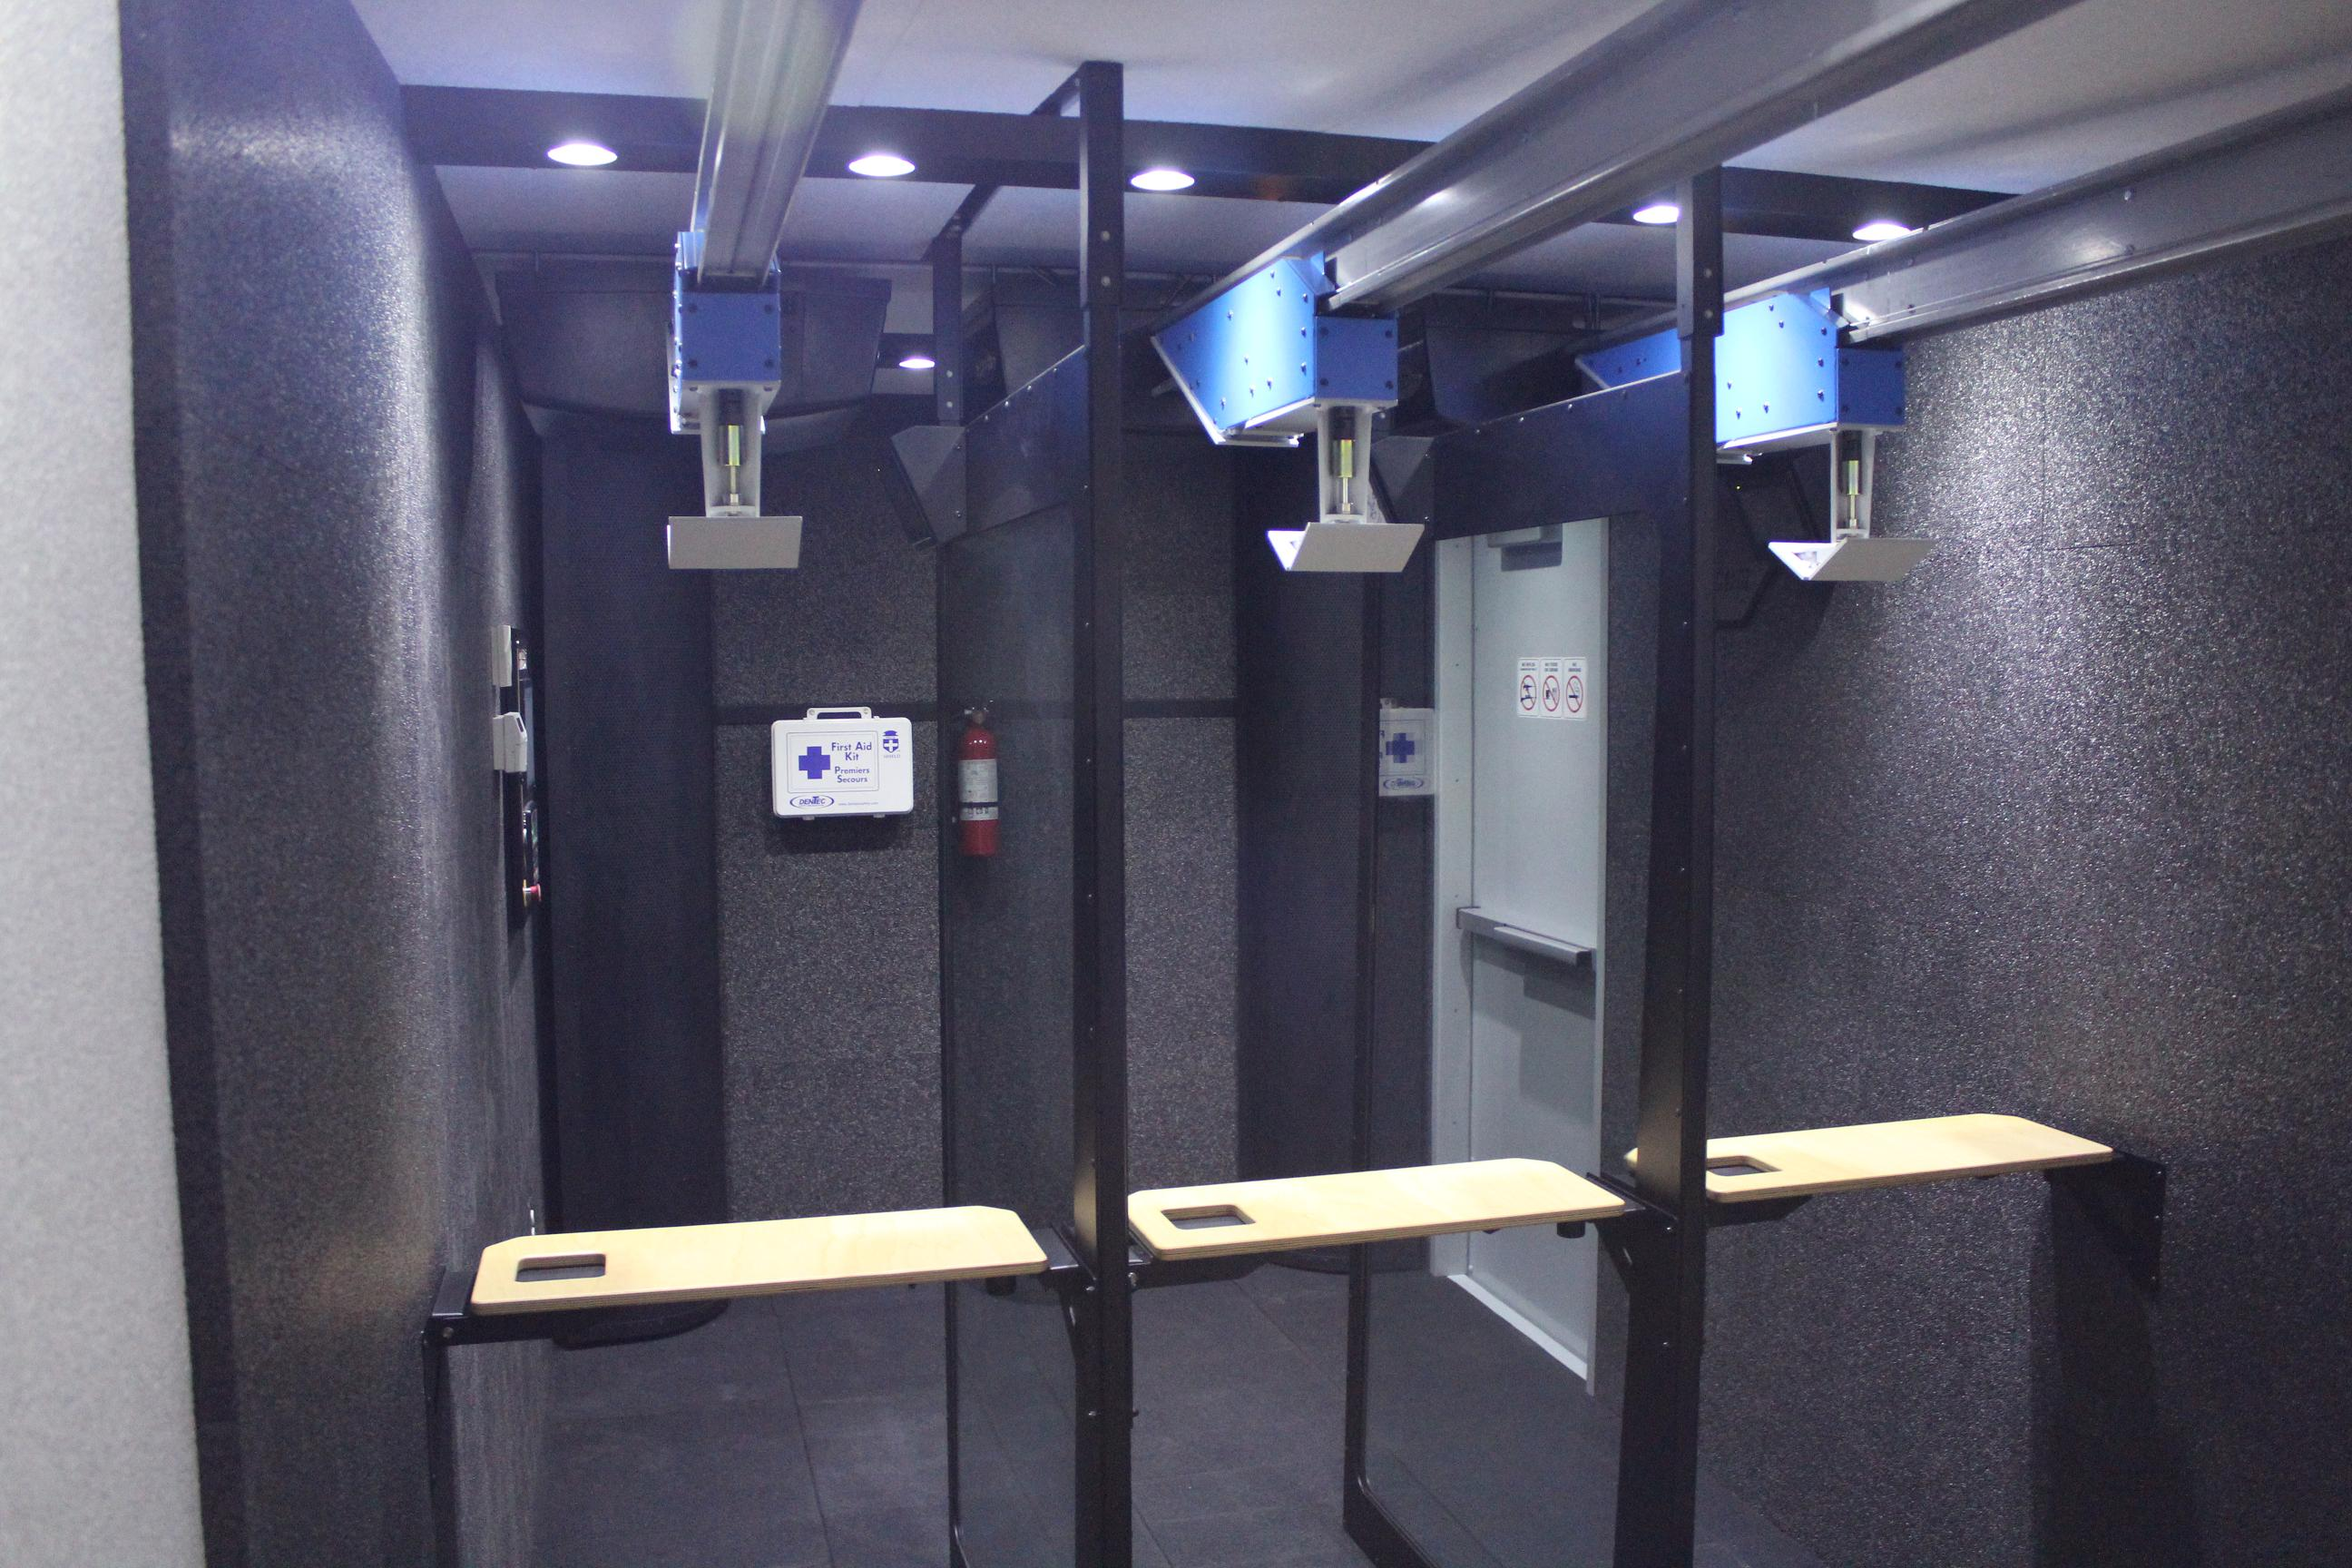 The Ventilation System Keeps Finalsm1 Shooters And Trainers Safe By Creating